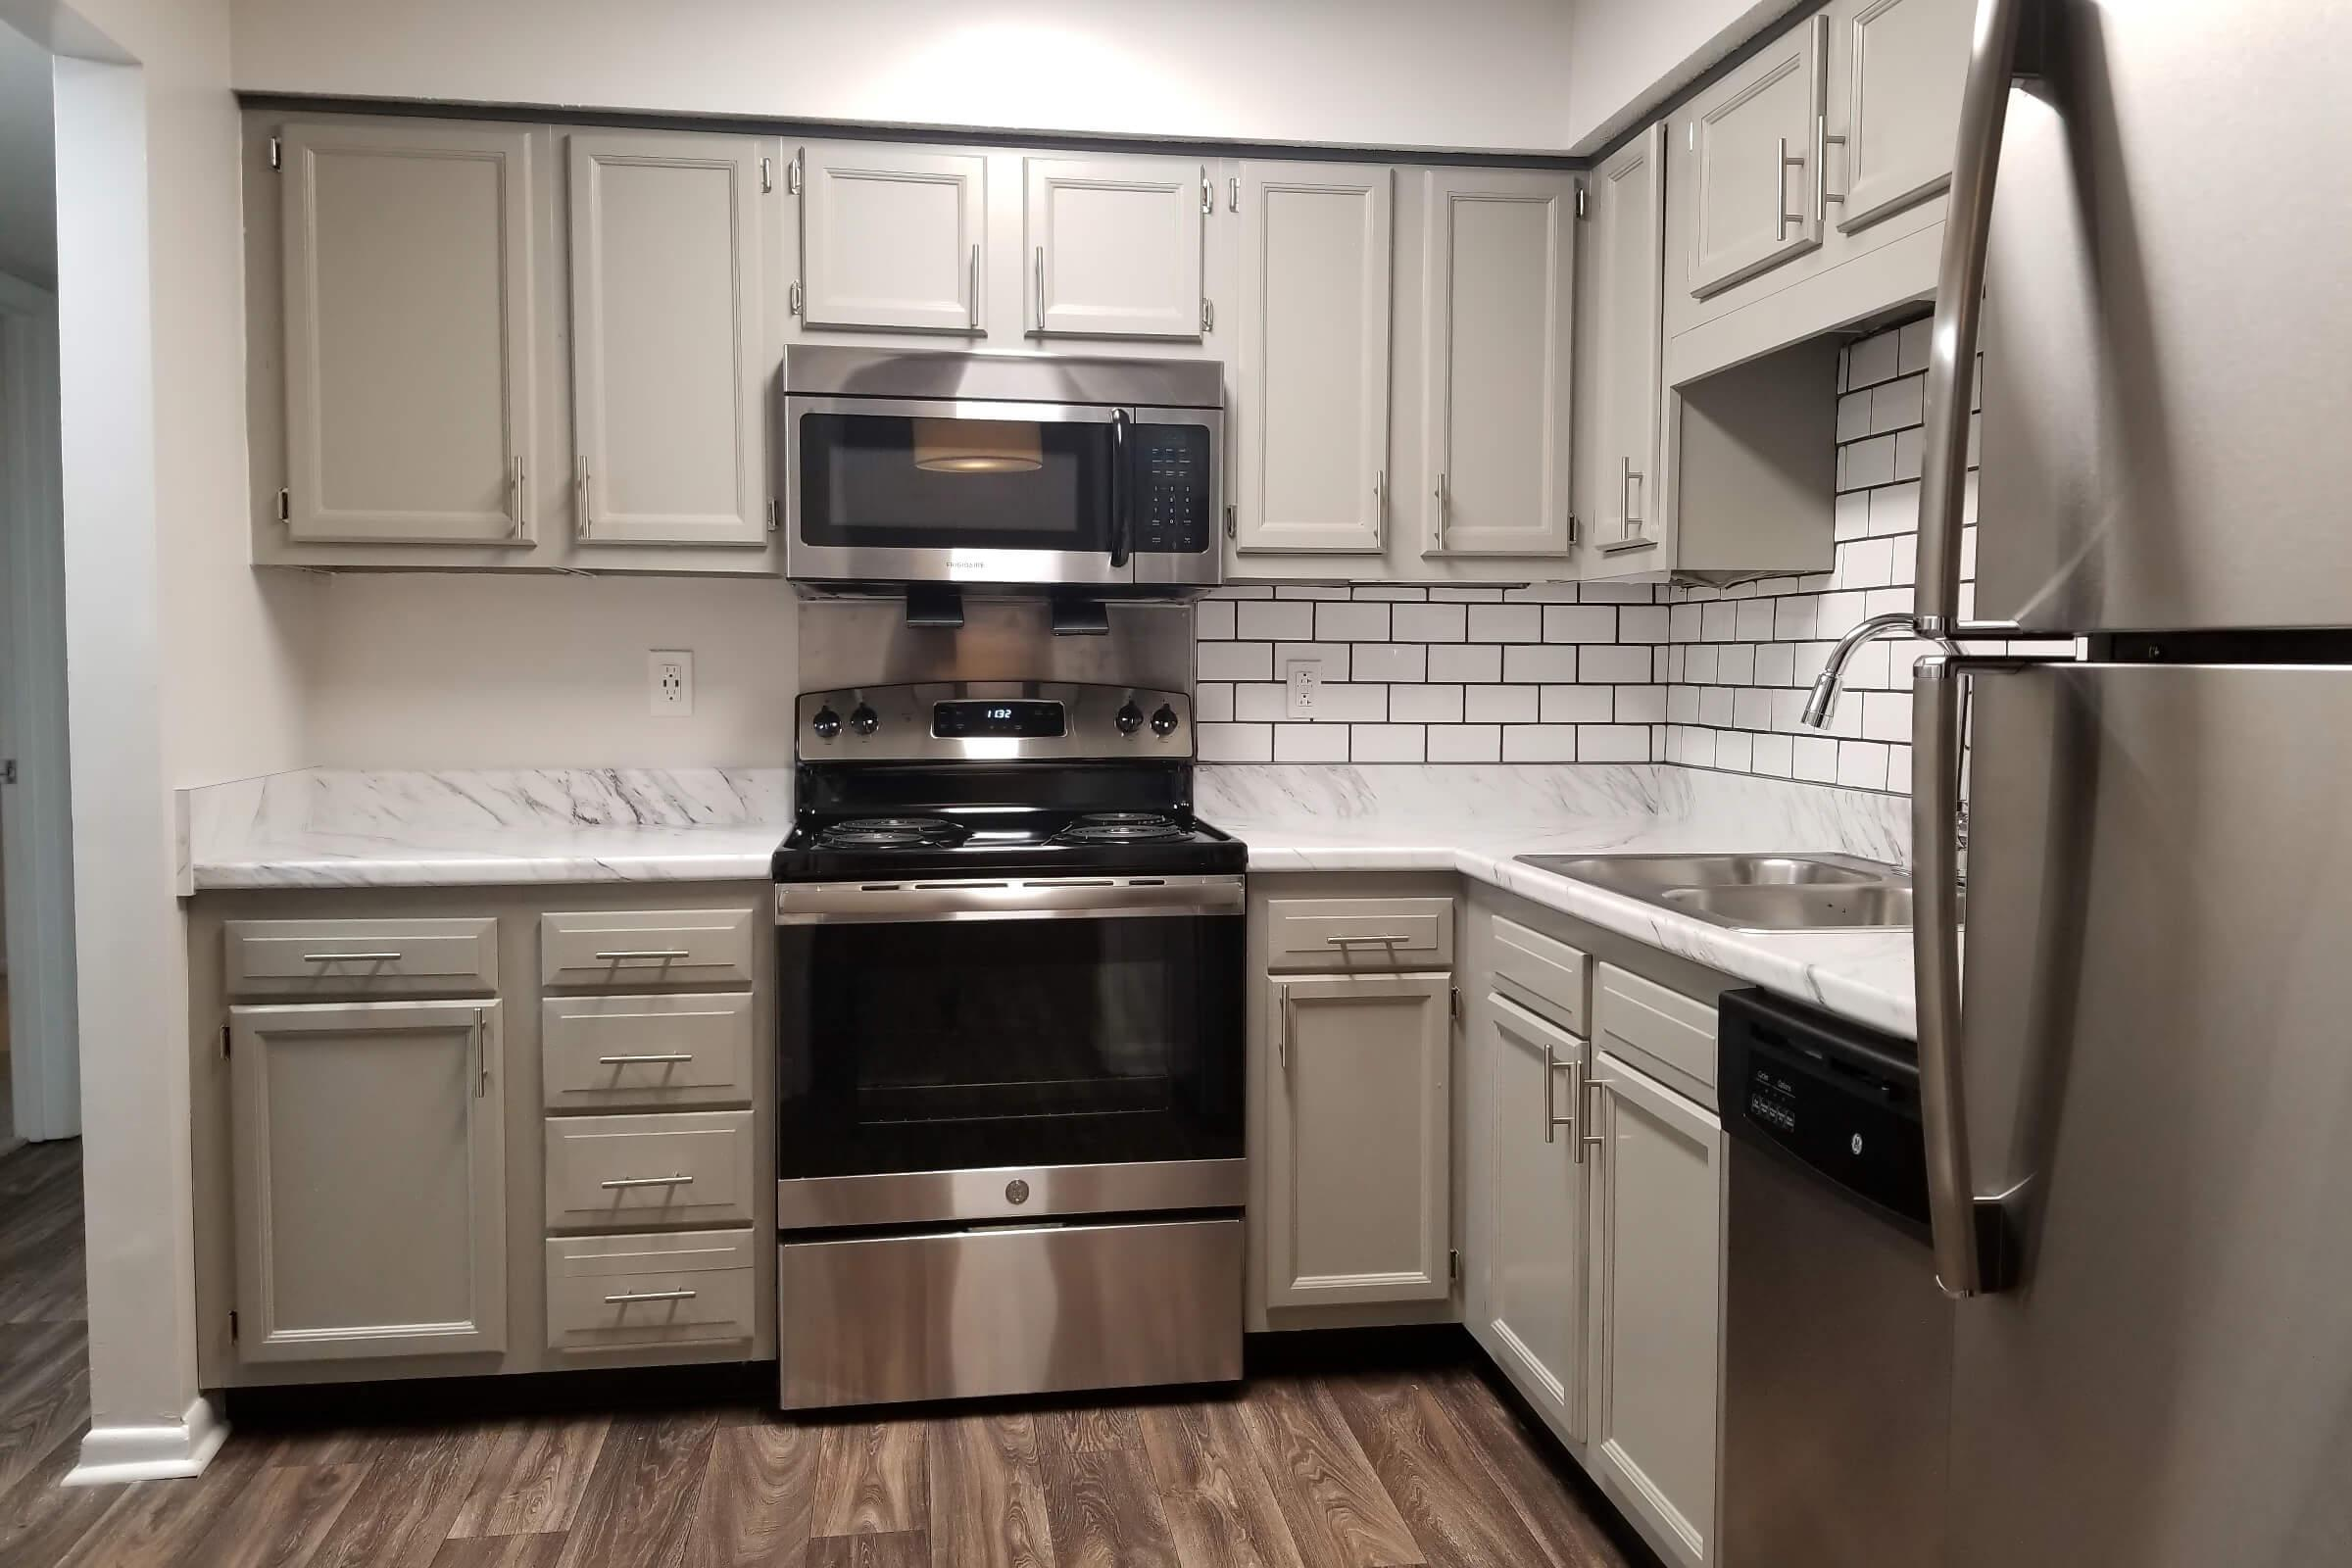 a kitchen with a stove and a refrigerator